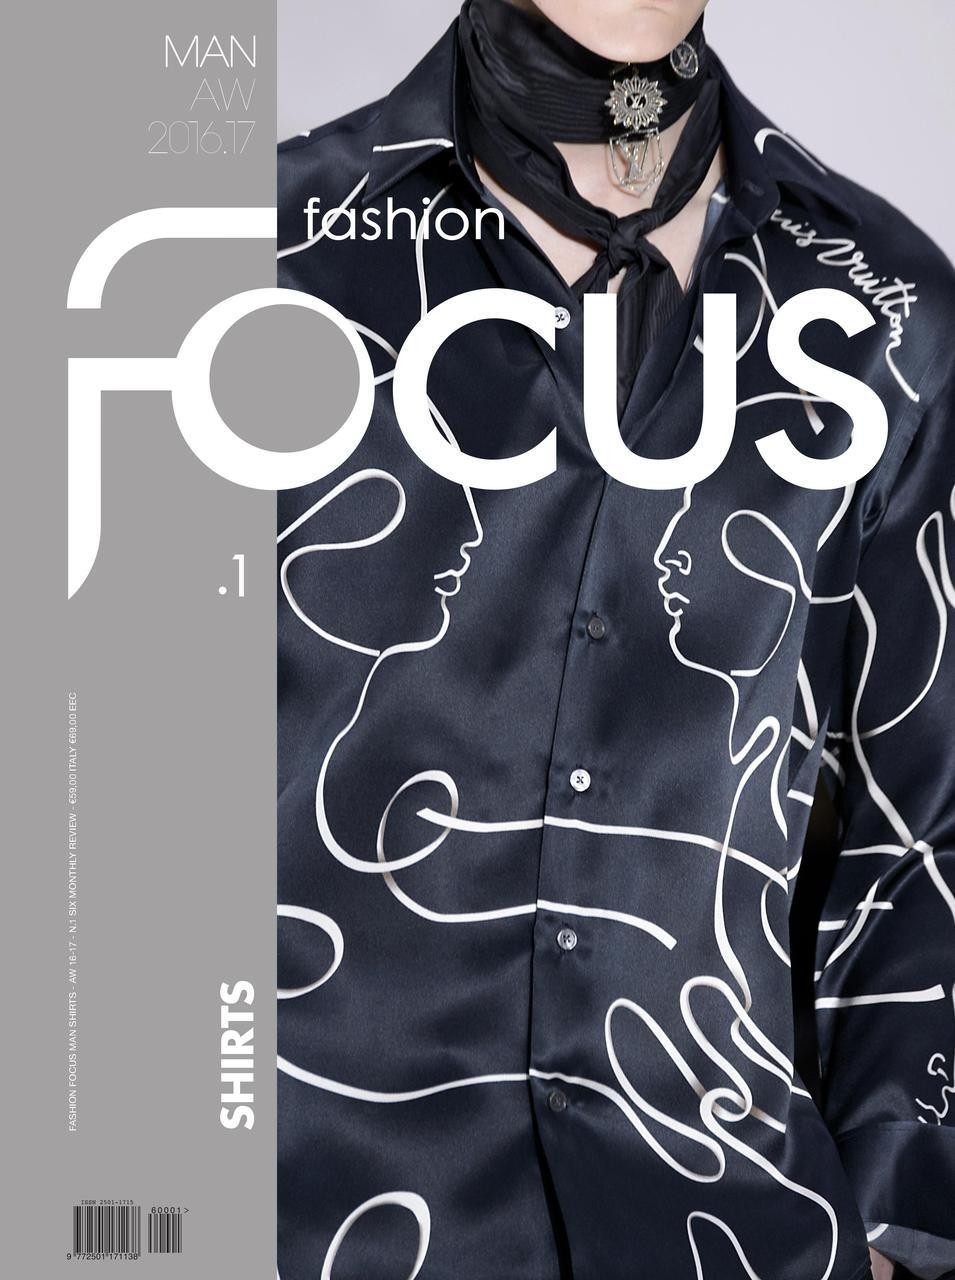 Fashion Focus Shirts (Man) Magazine